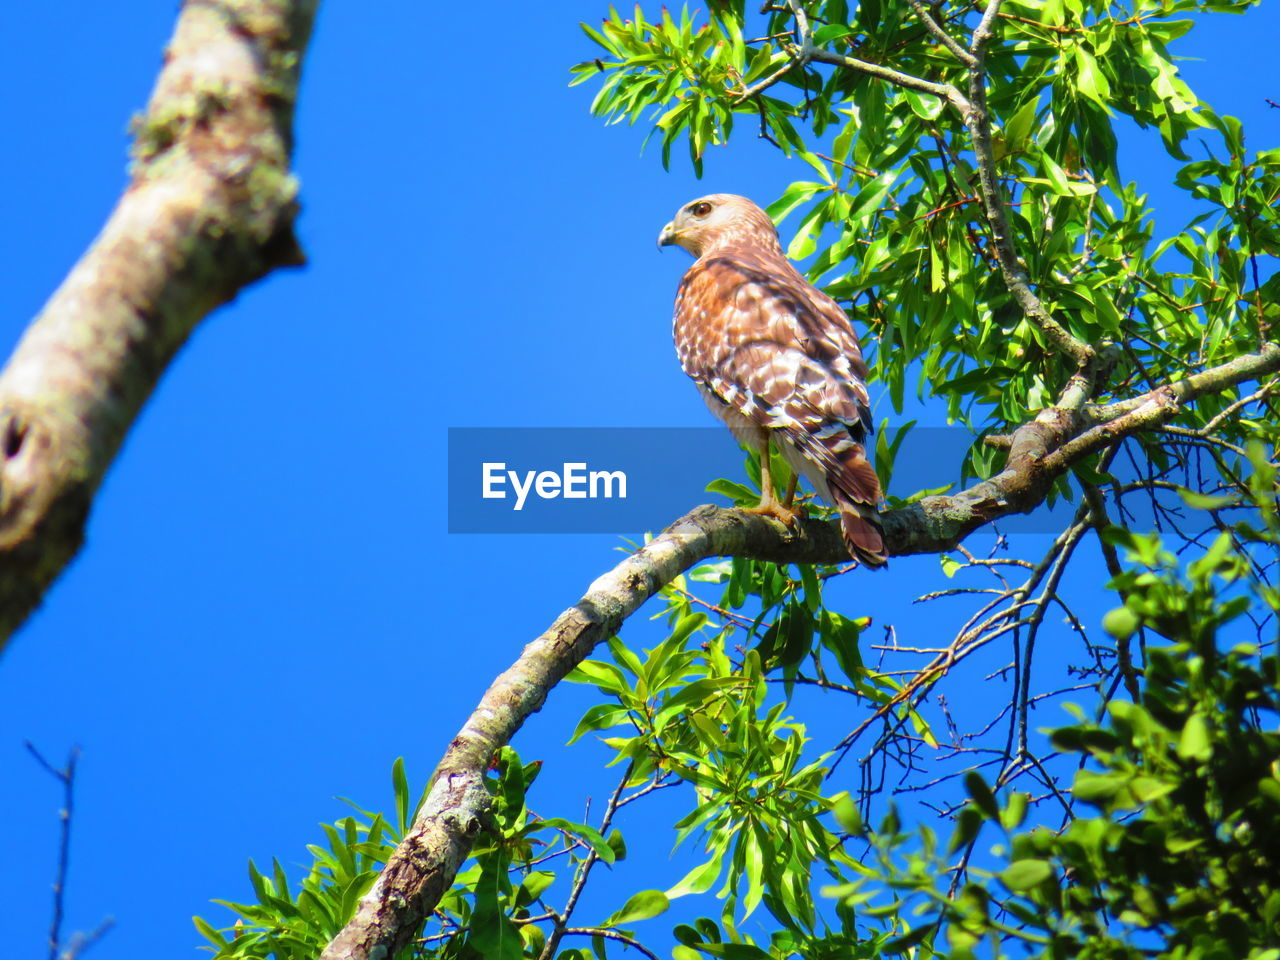 bird, plant, tree, animals in the wild, animal themes, animal, vertebrate, one animal, animal wildlife, perching, branch, low angle view, blue, nature, clear sky, sky, day, no people, sunlight, beauty in nature, eagle